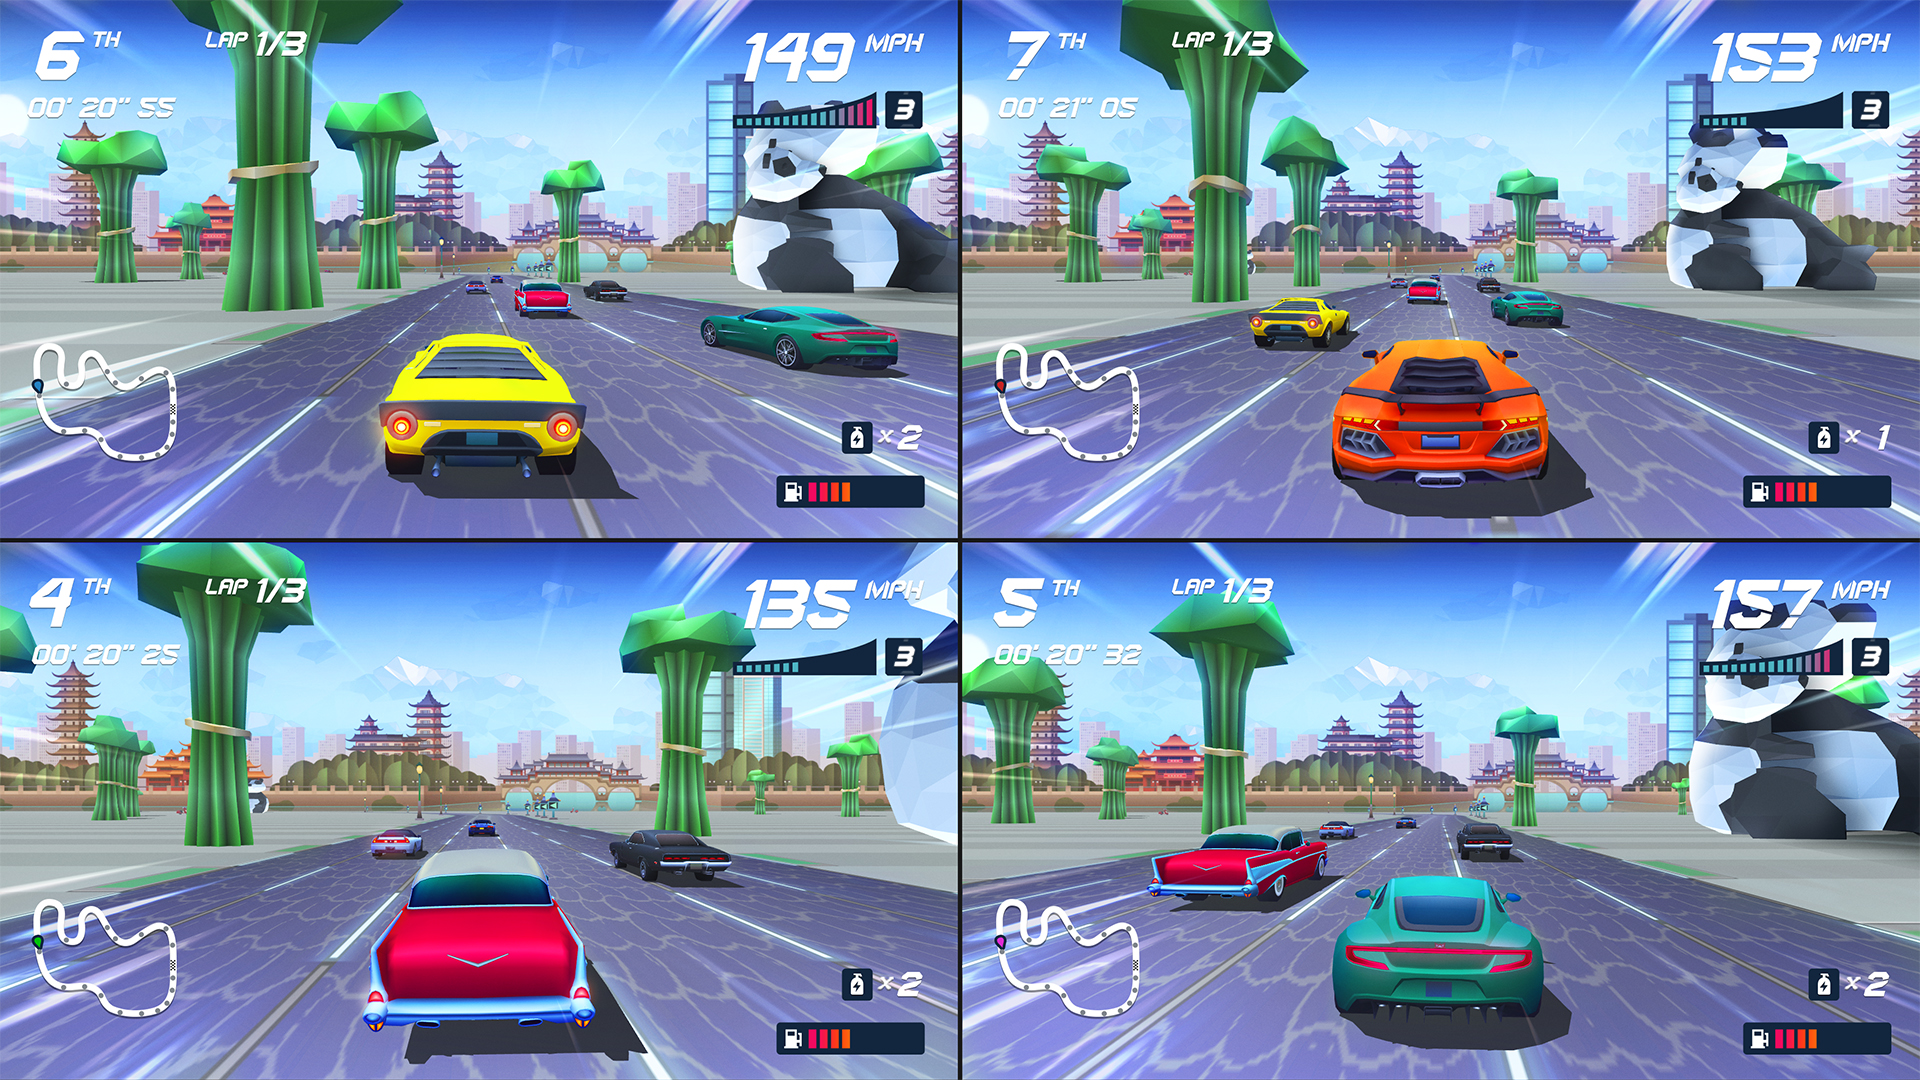 PREVIEW: Horizon Chase Turbo Is An Homage To Racing Games Of